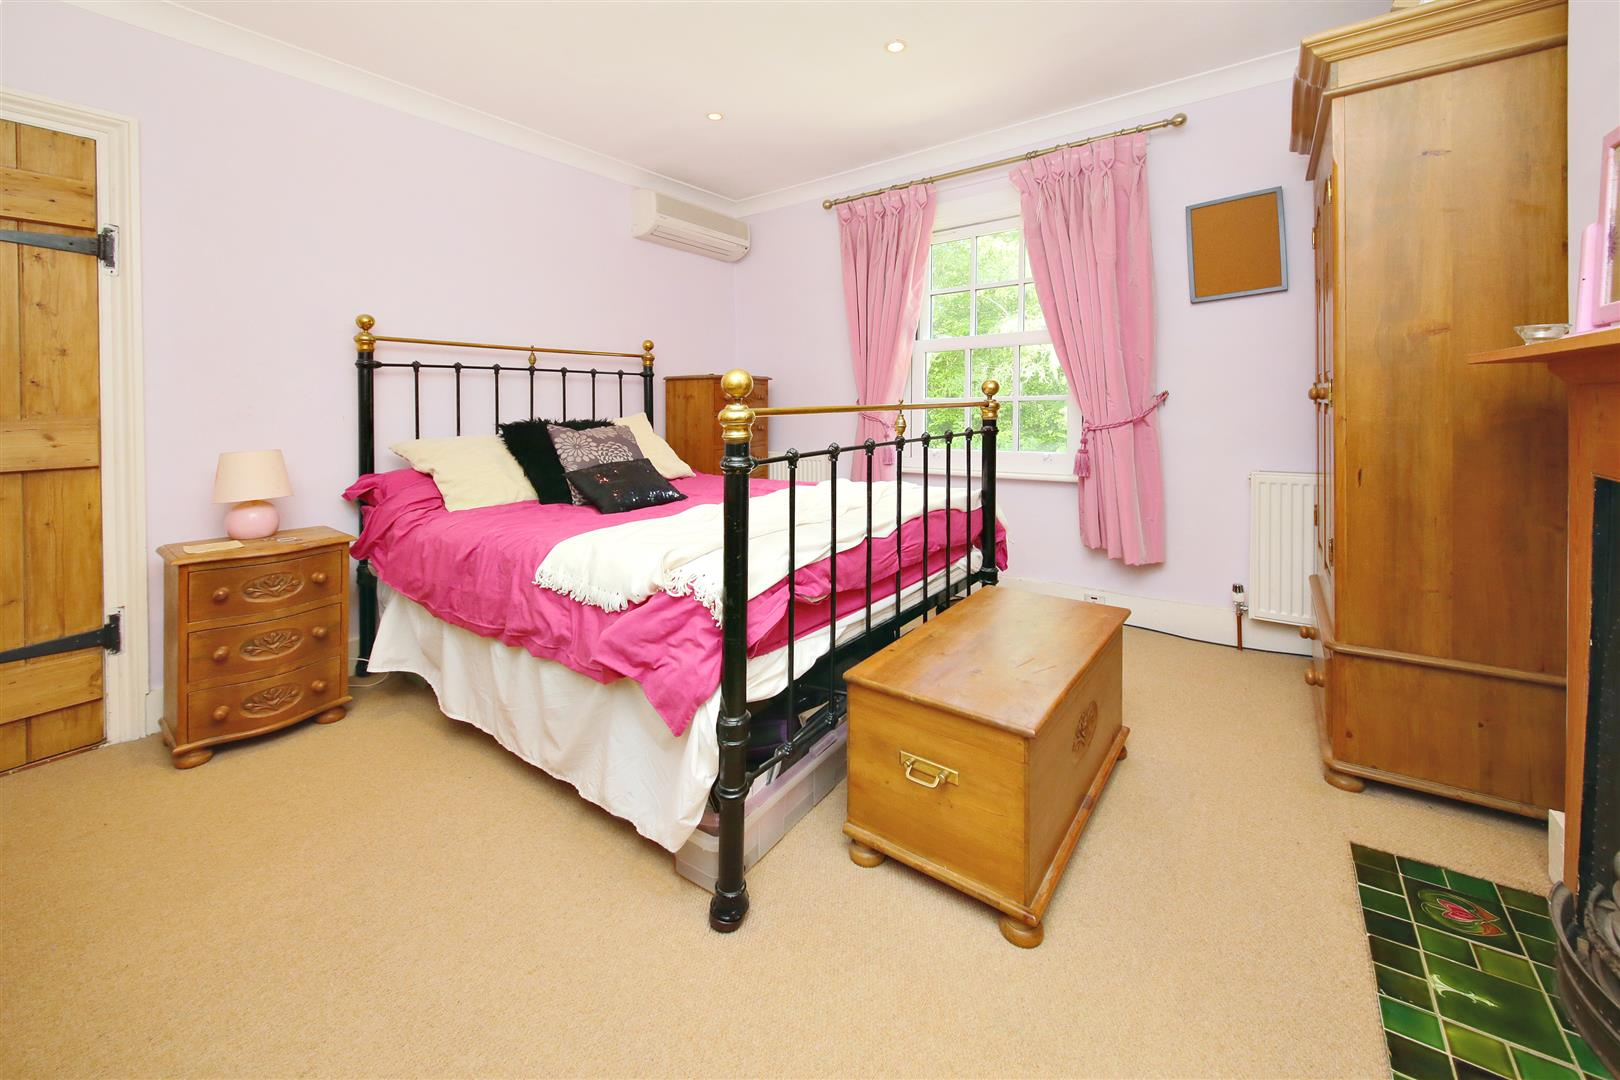 3 bed for sale in Station Road, Bricket Wood - (Property Image 4)